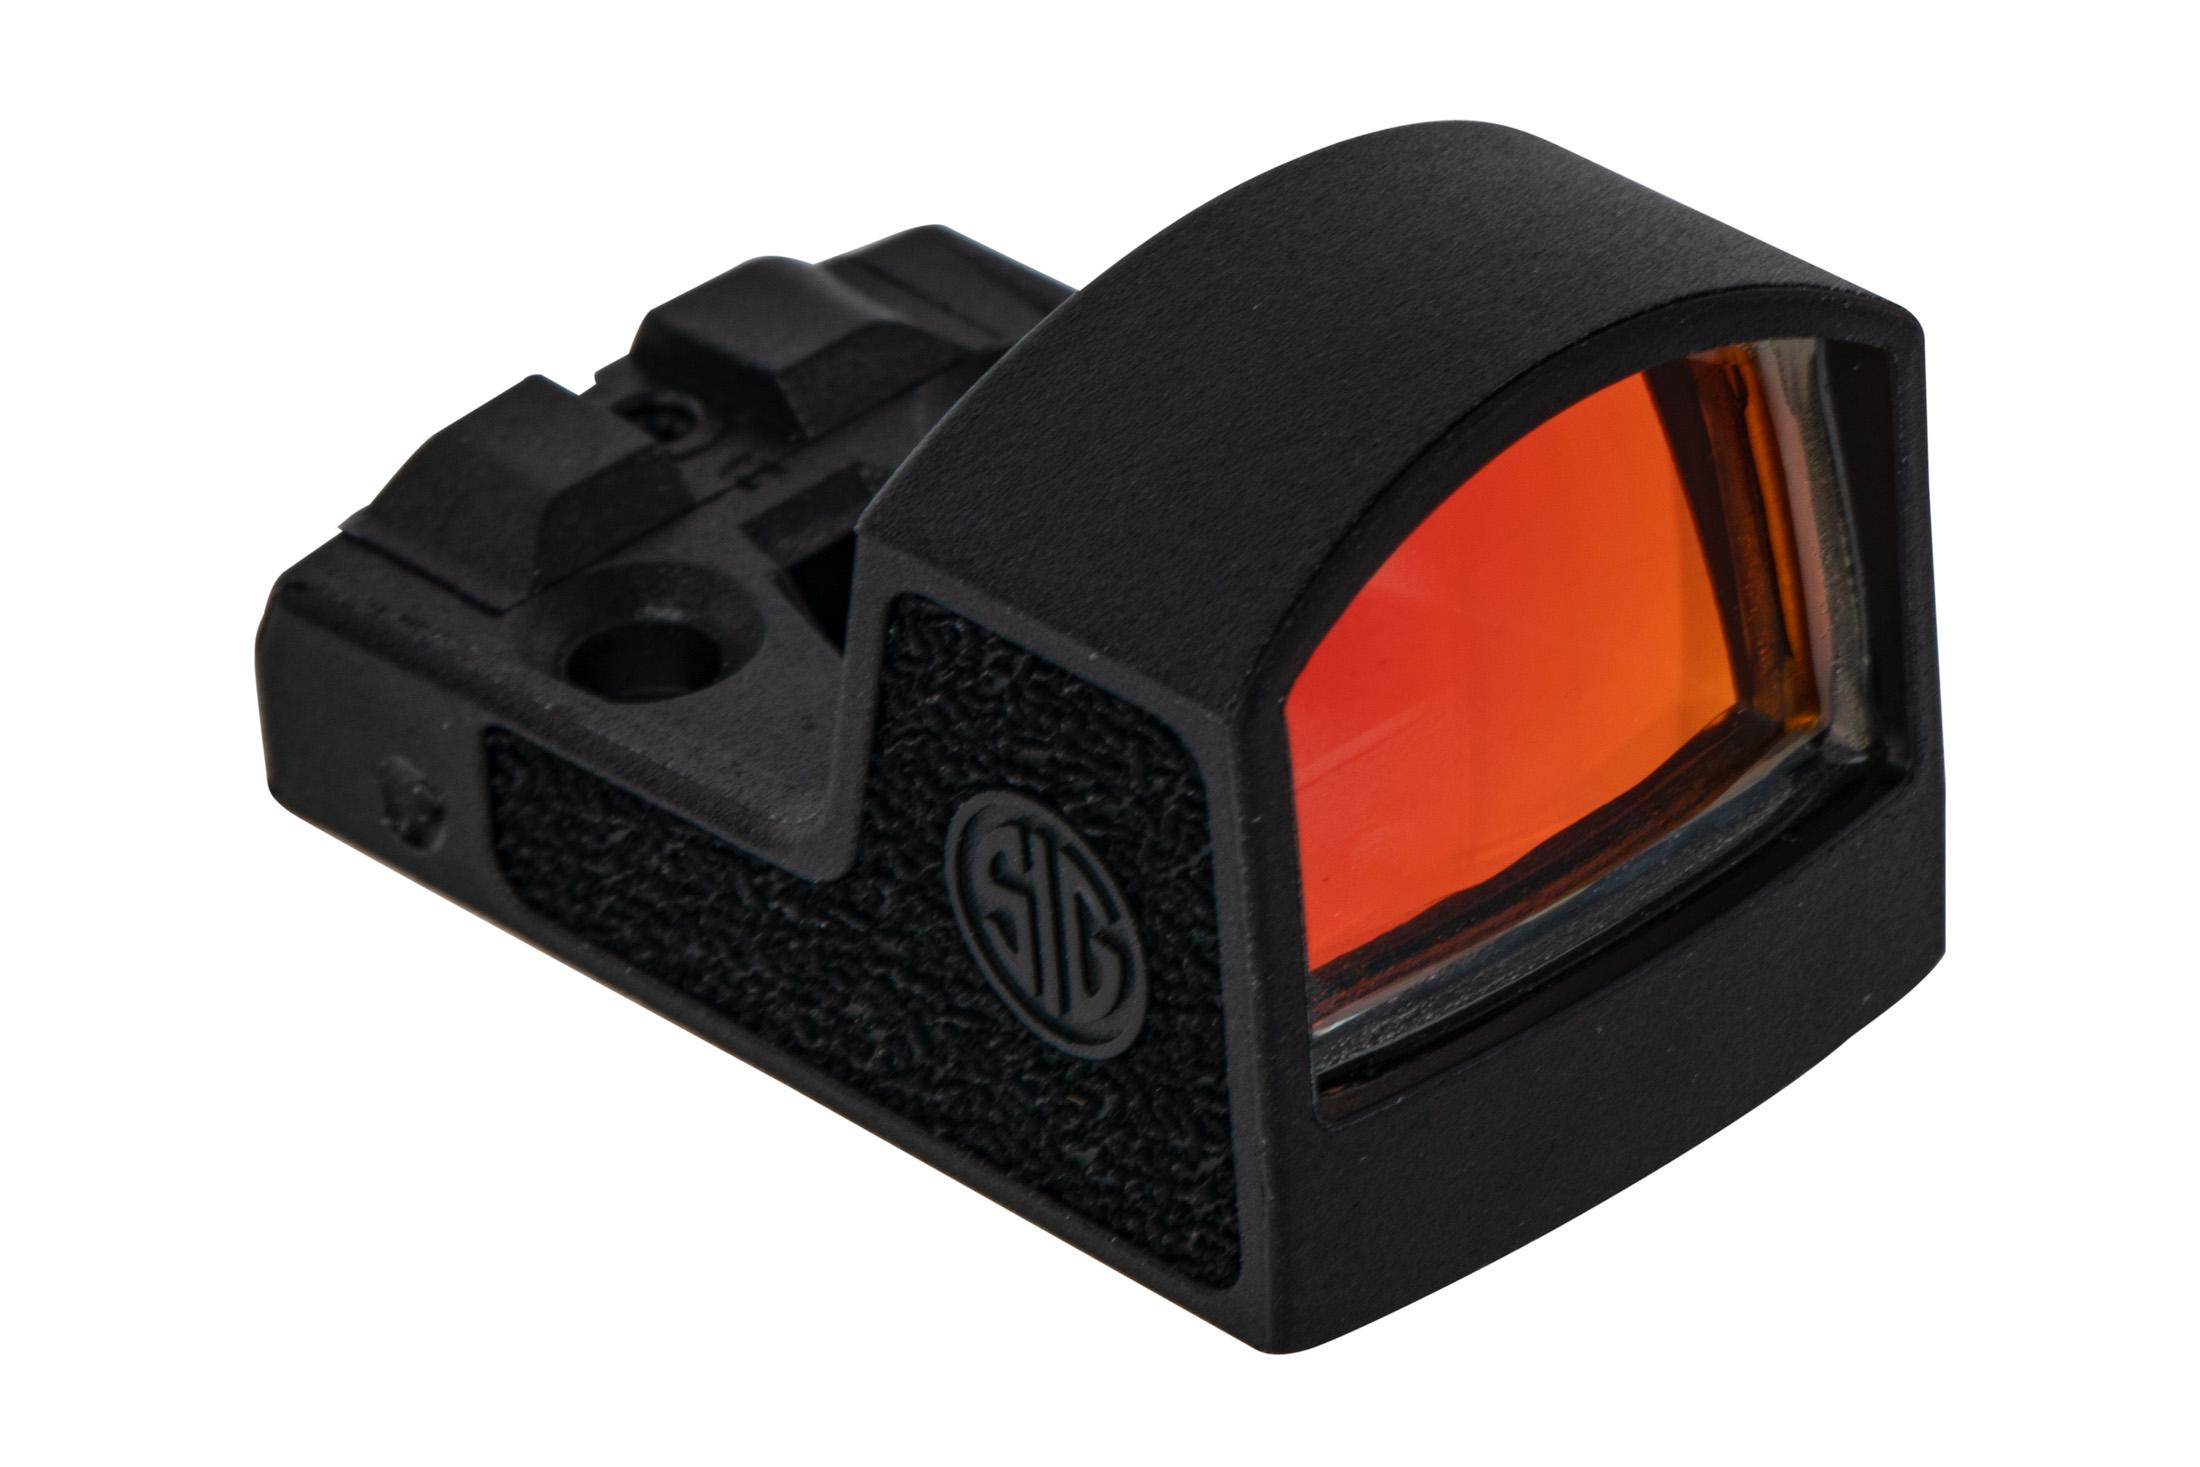 SIG ROMEO Zero Red Dot Sight features a 6 MOA dot